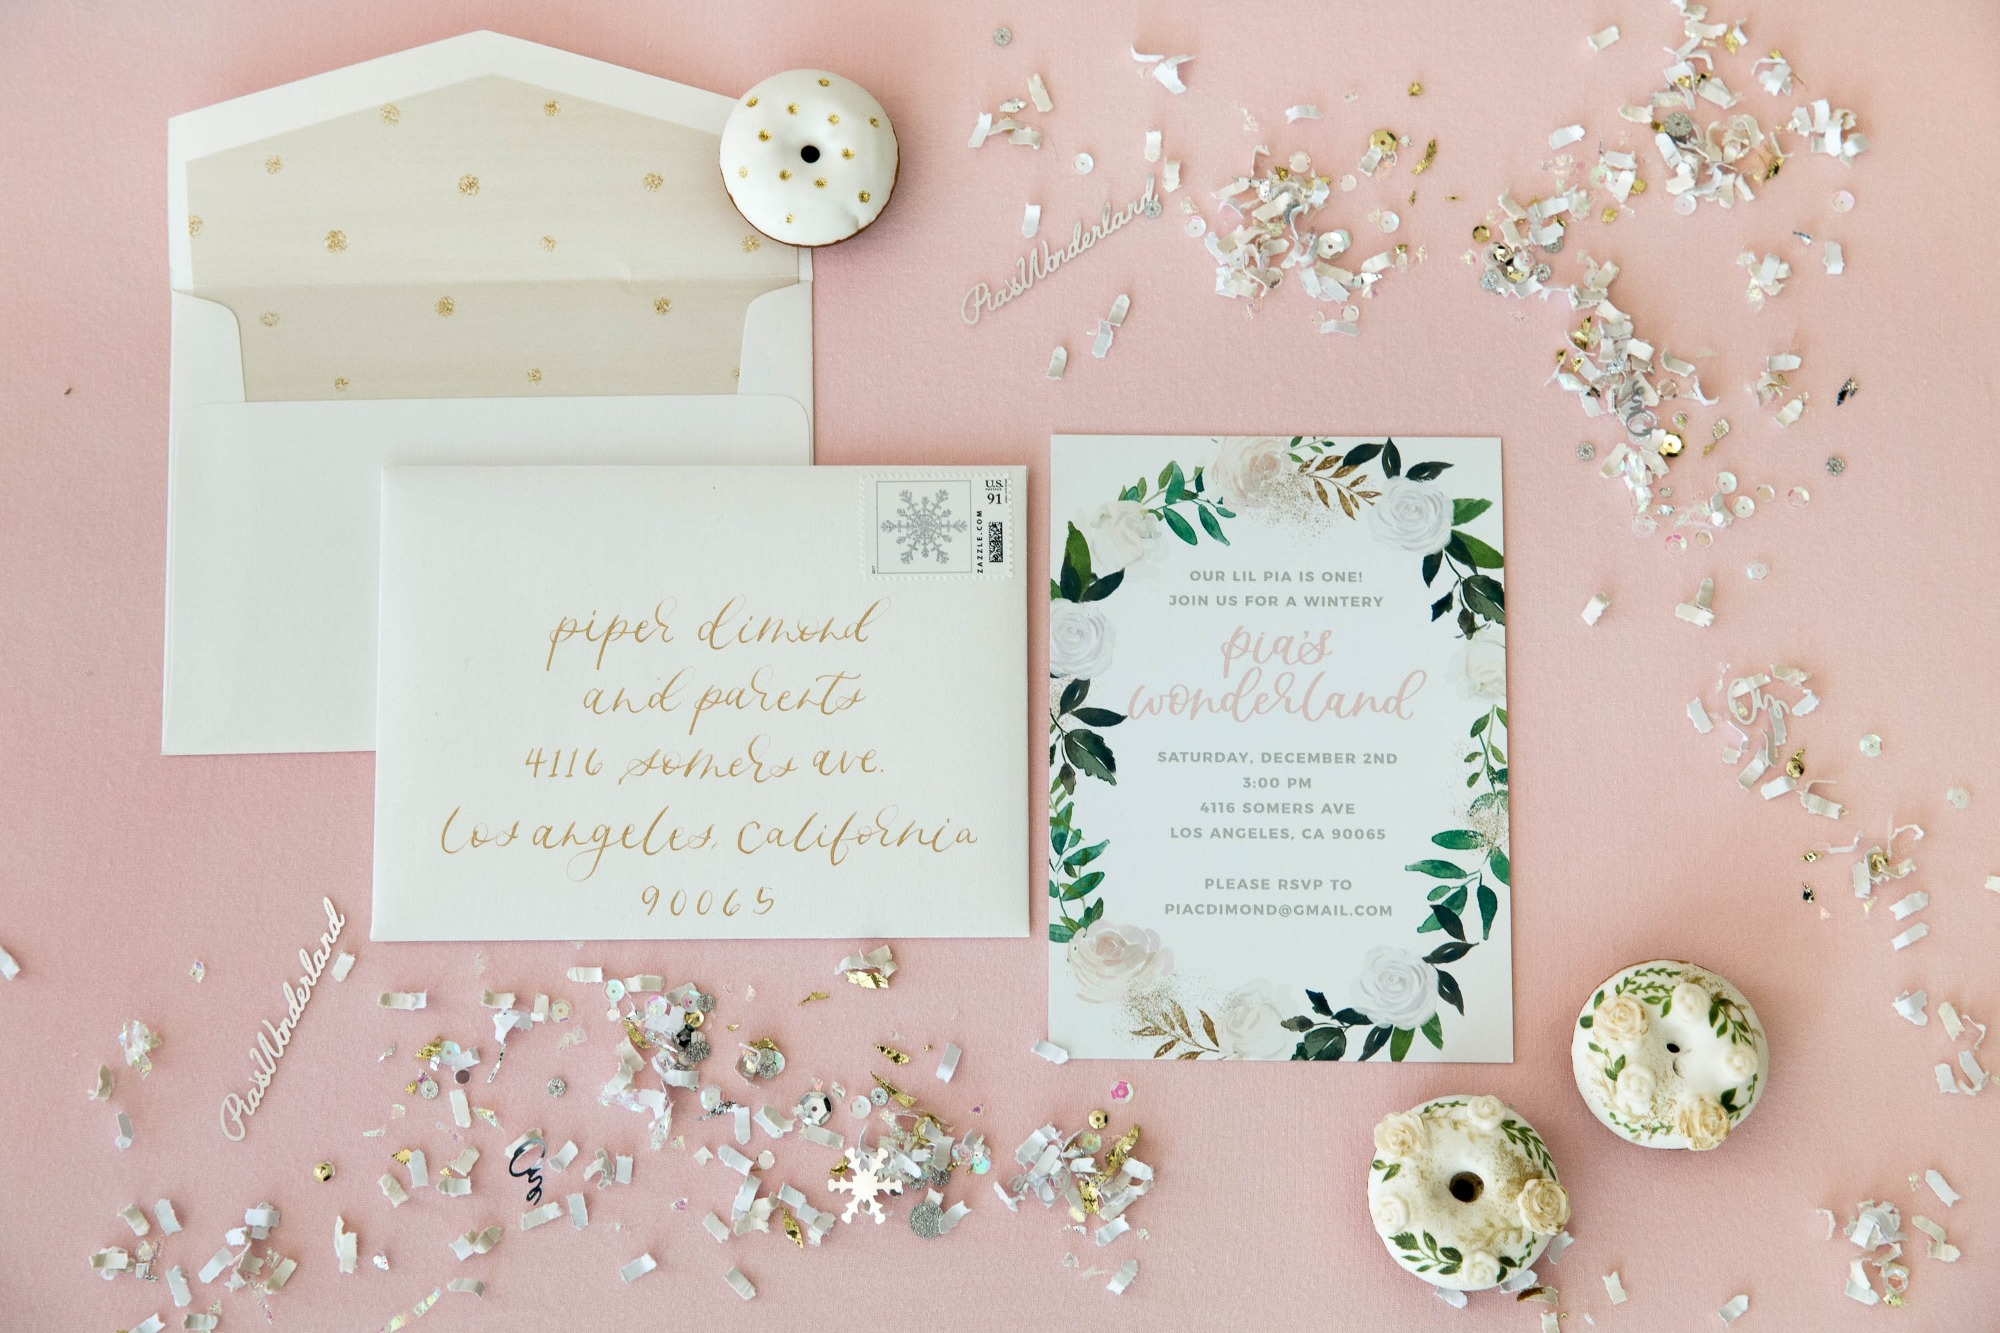 Invitation from Snowy Birthday Soiree Styled by Deets & Things | Black Twine